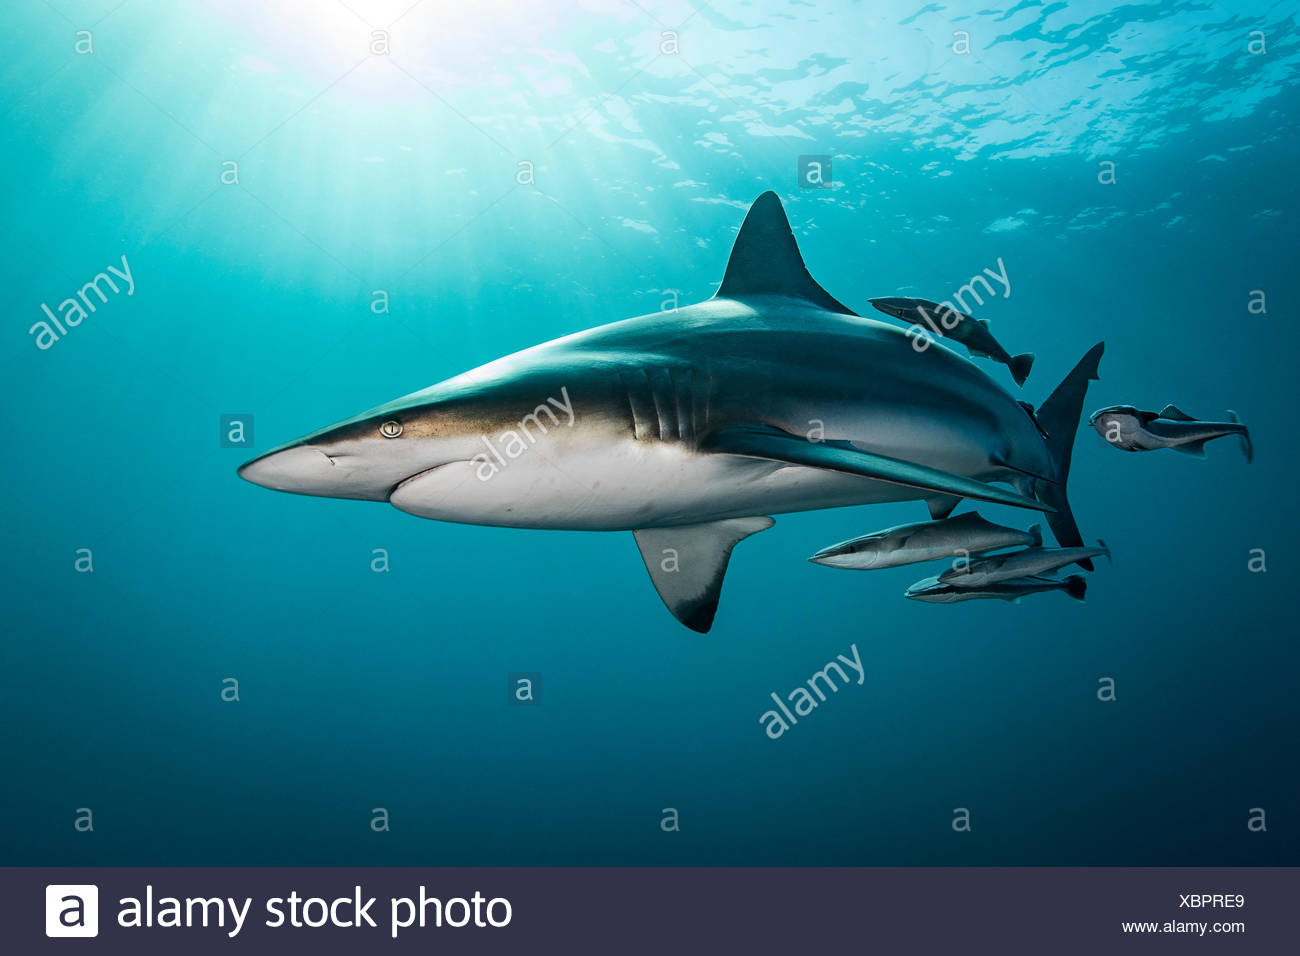 Oceanic Blacktip Shark (Carcharhinus Limbatus) swimming near surface of ocean, Aliwal Shoal, South Africa Stock Photo